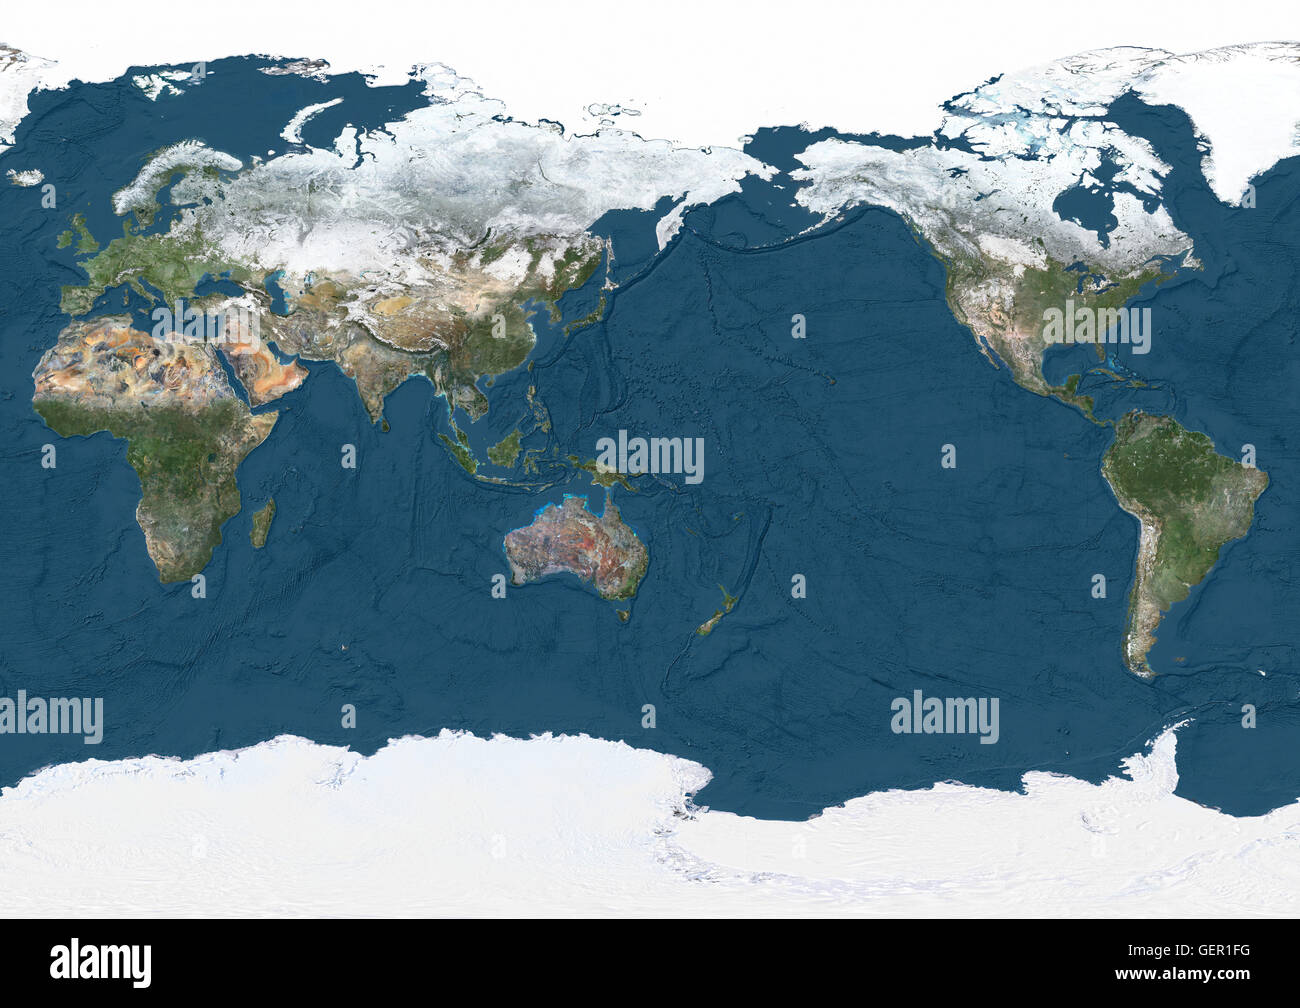 Map Of The World Satellite.World Satellite Map Pacific Centred In Winter With Partial Snow